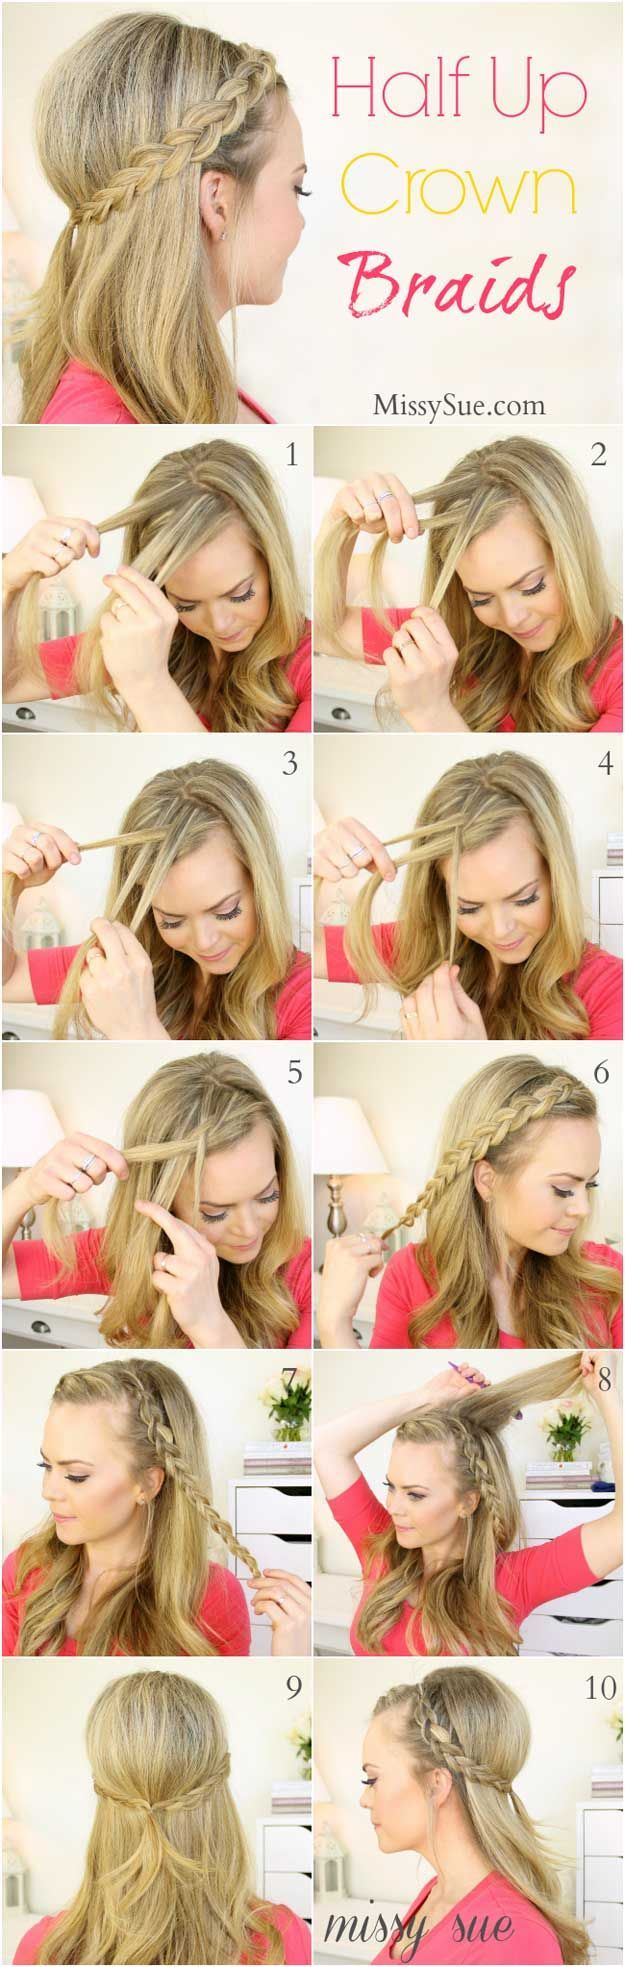 Amazing Half Up-Half Down Hairstyles For Long Hair - Half Up Dutch Braids - Easy...